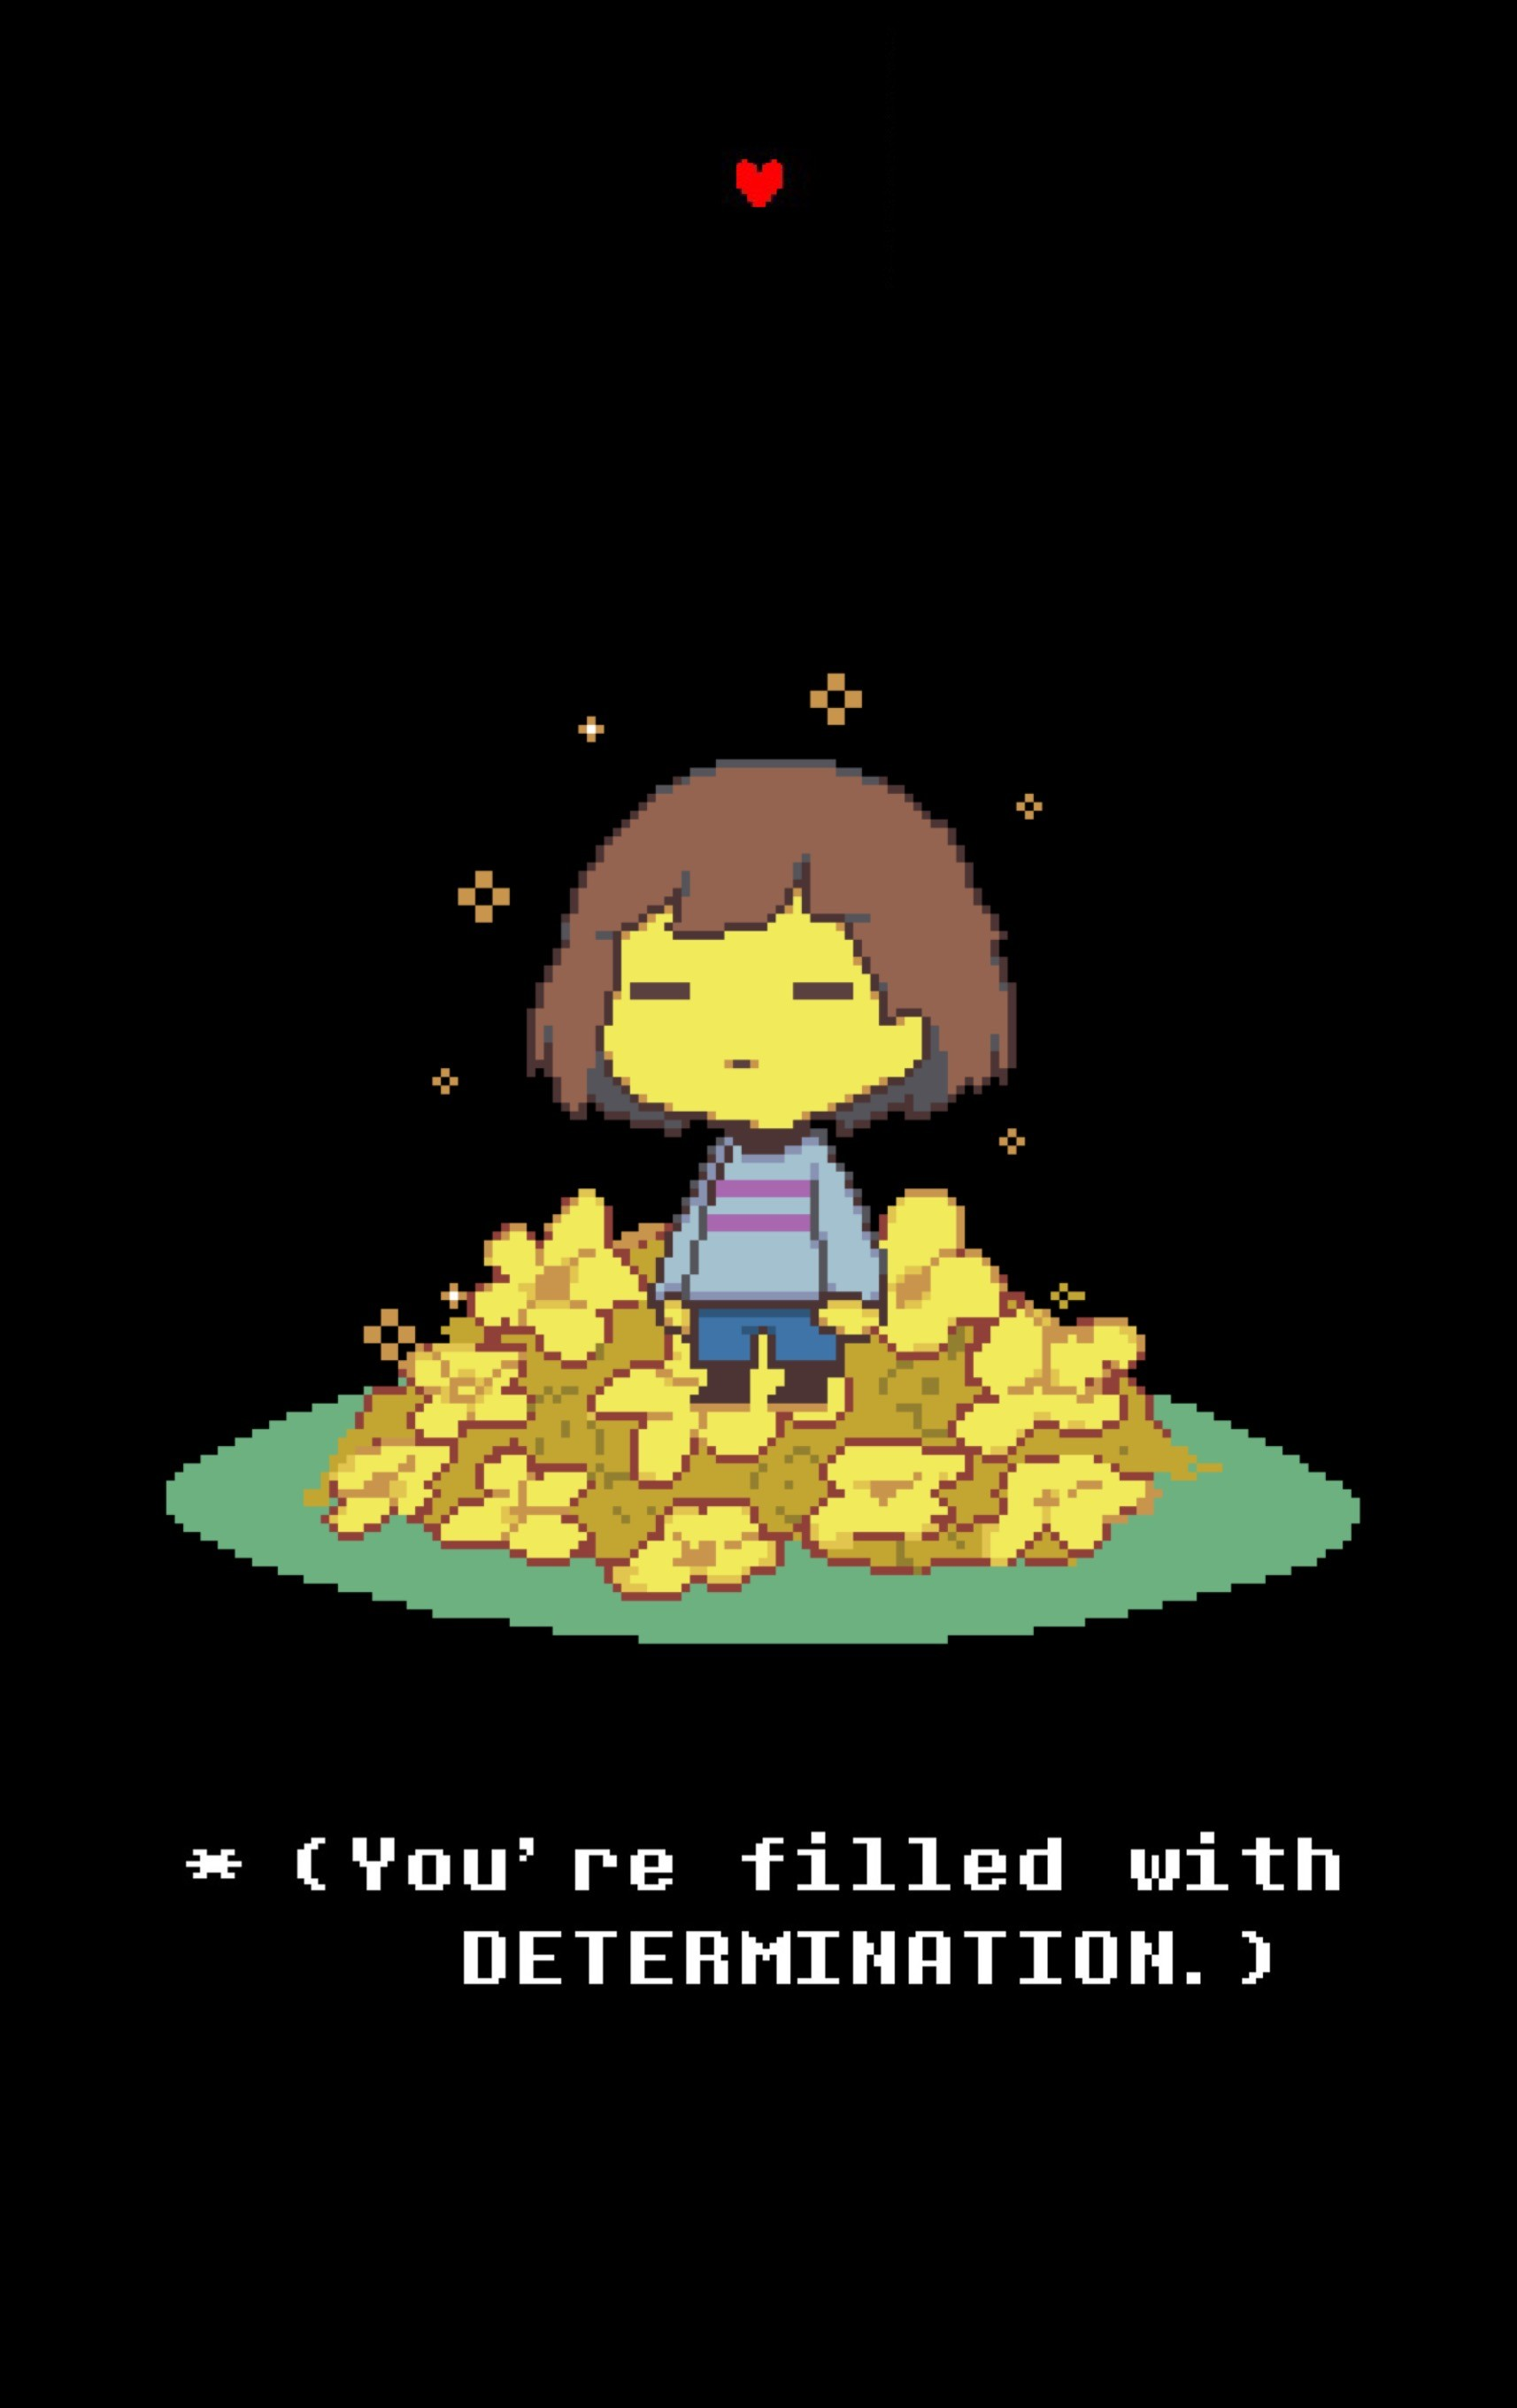 My Undertale iPhone wallpaper! (Credits to boorim on Deviantart for the  lovely Frisk pixel art)